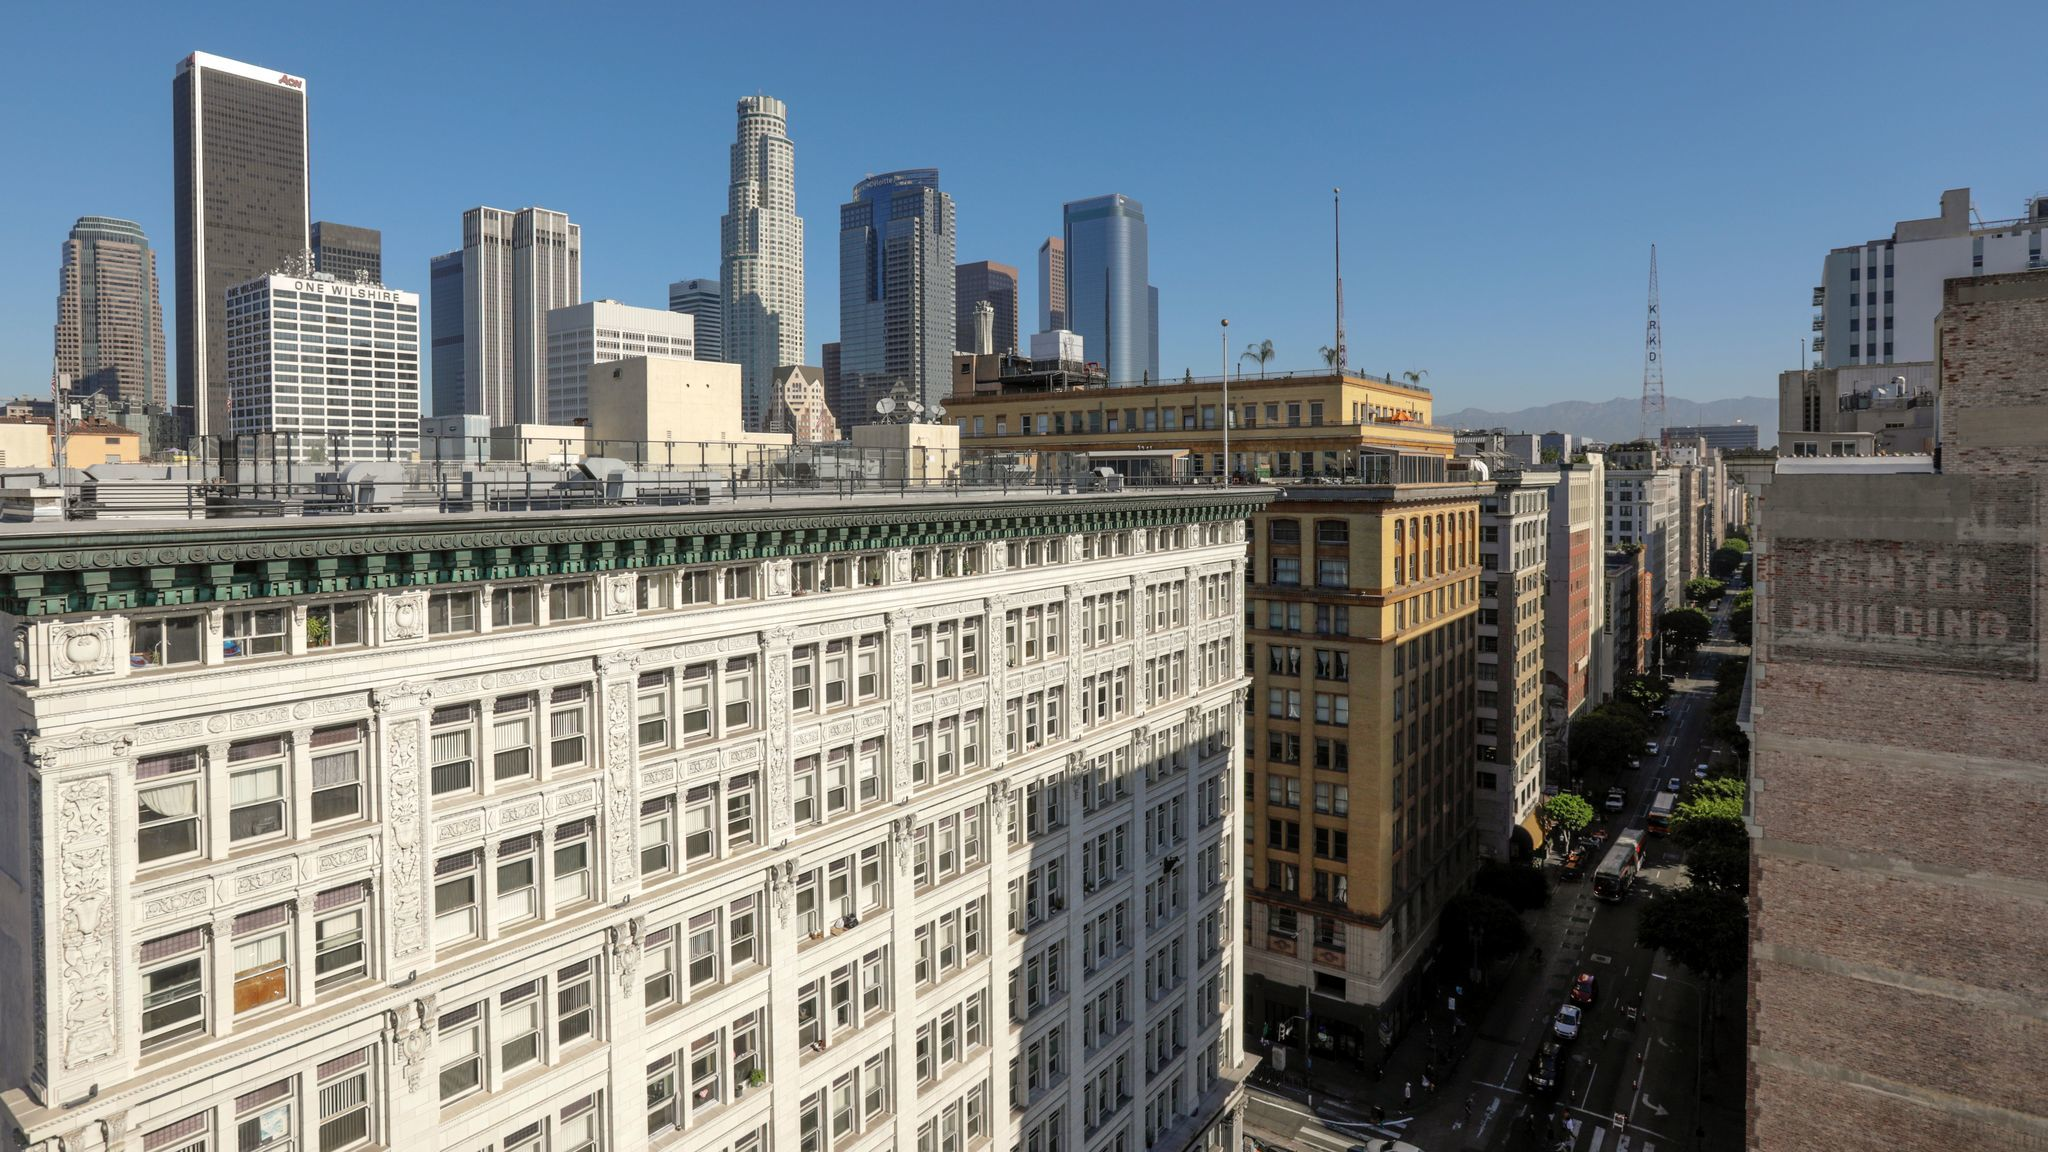 A view of the skyline from the Corporation Building on Spring Street.